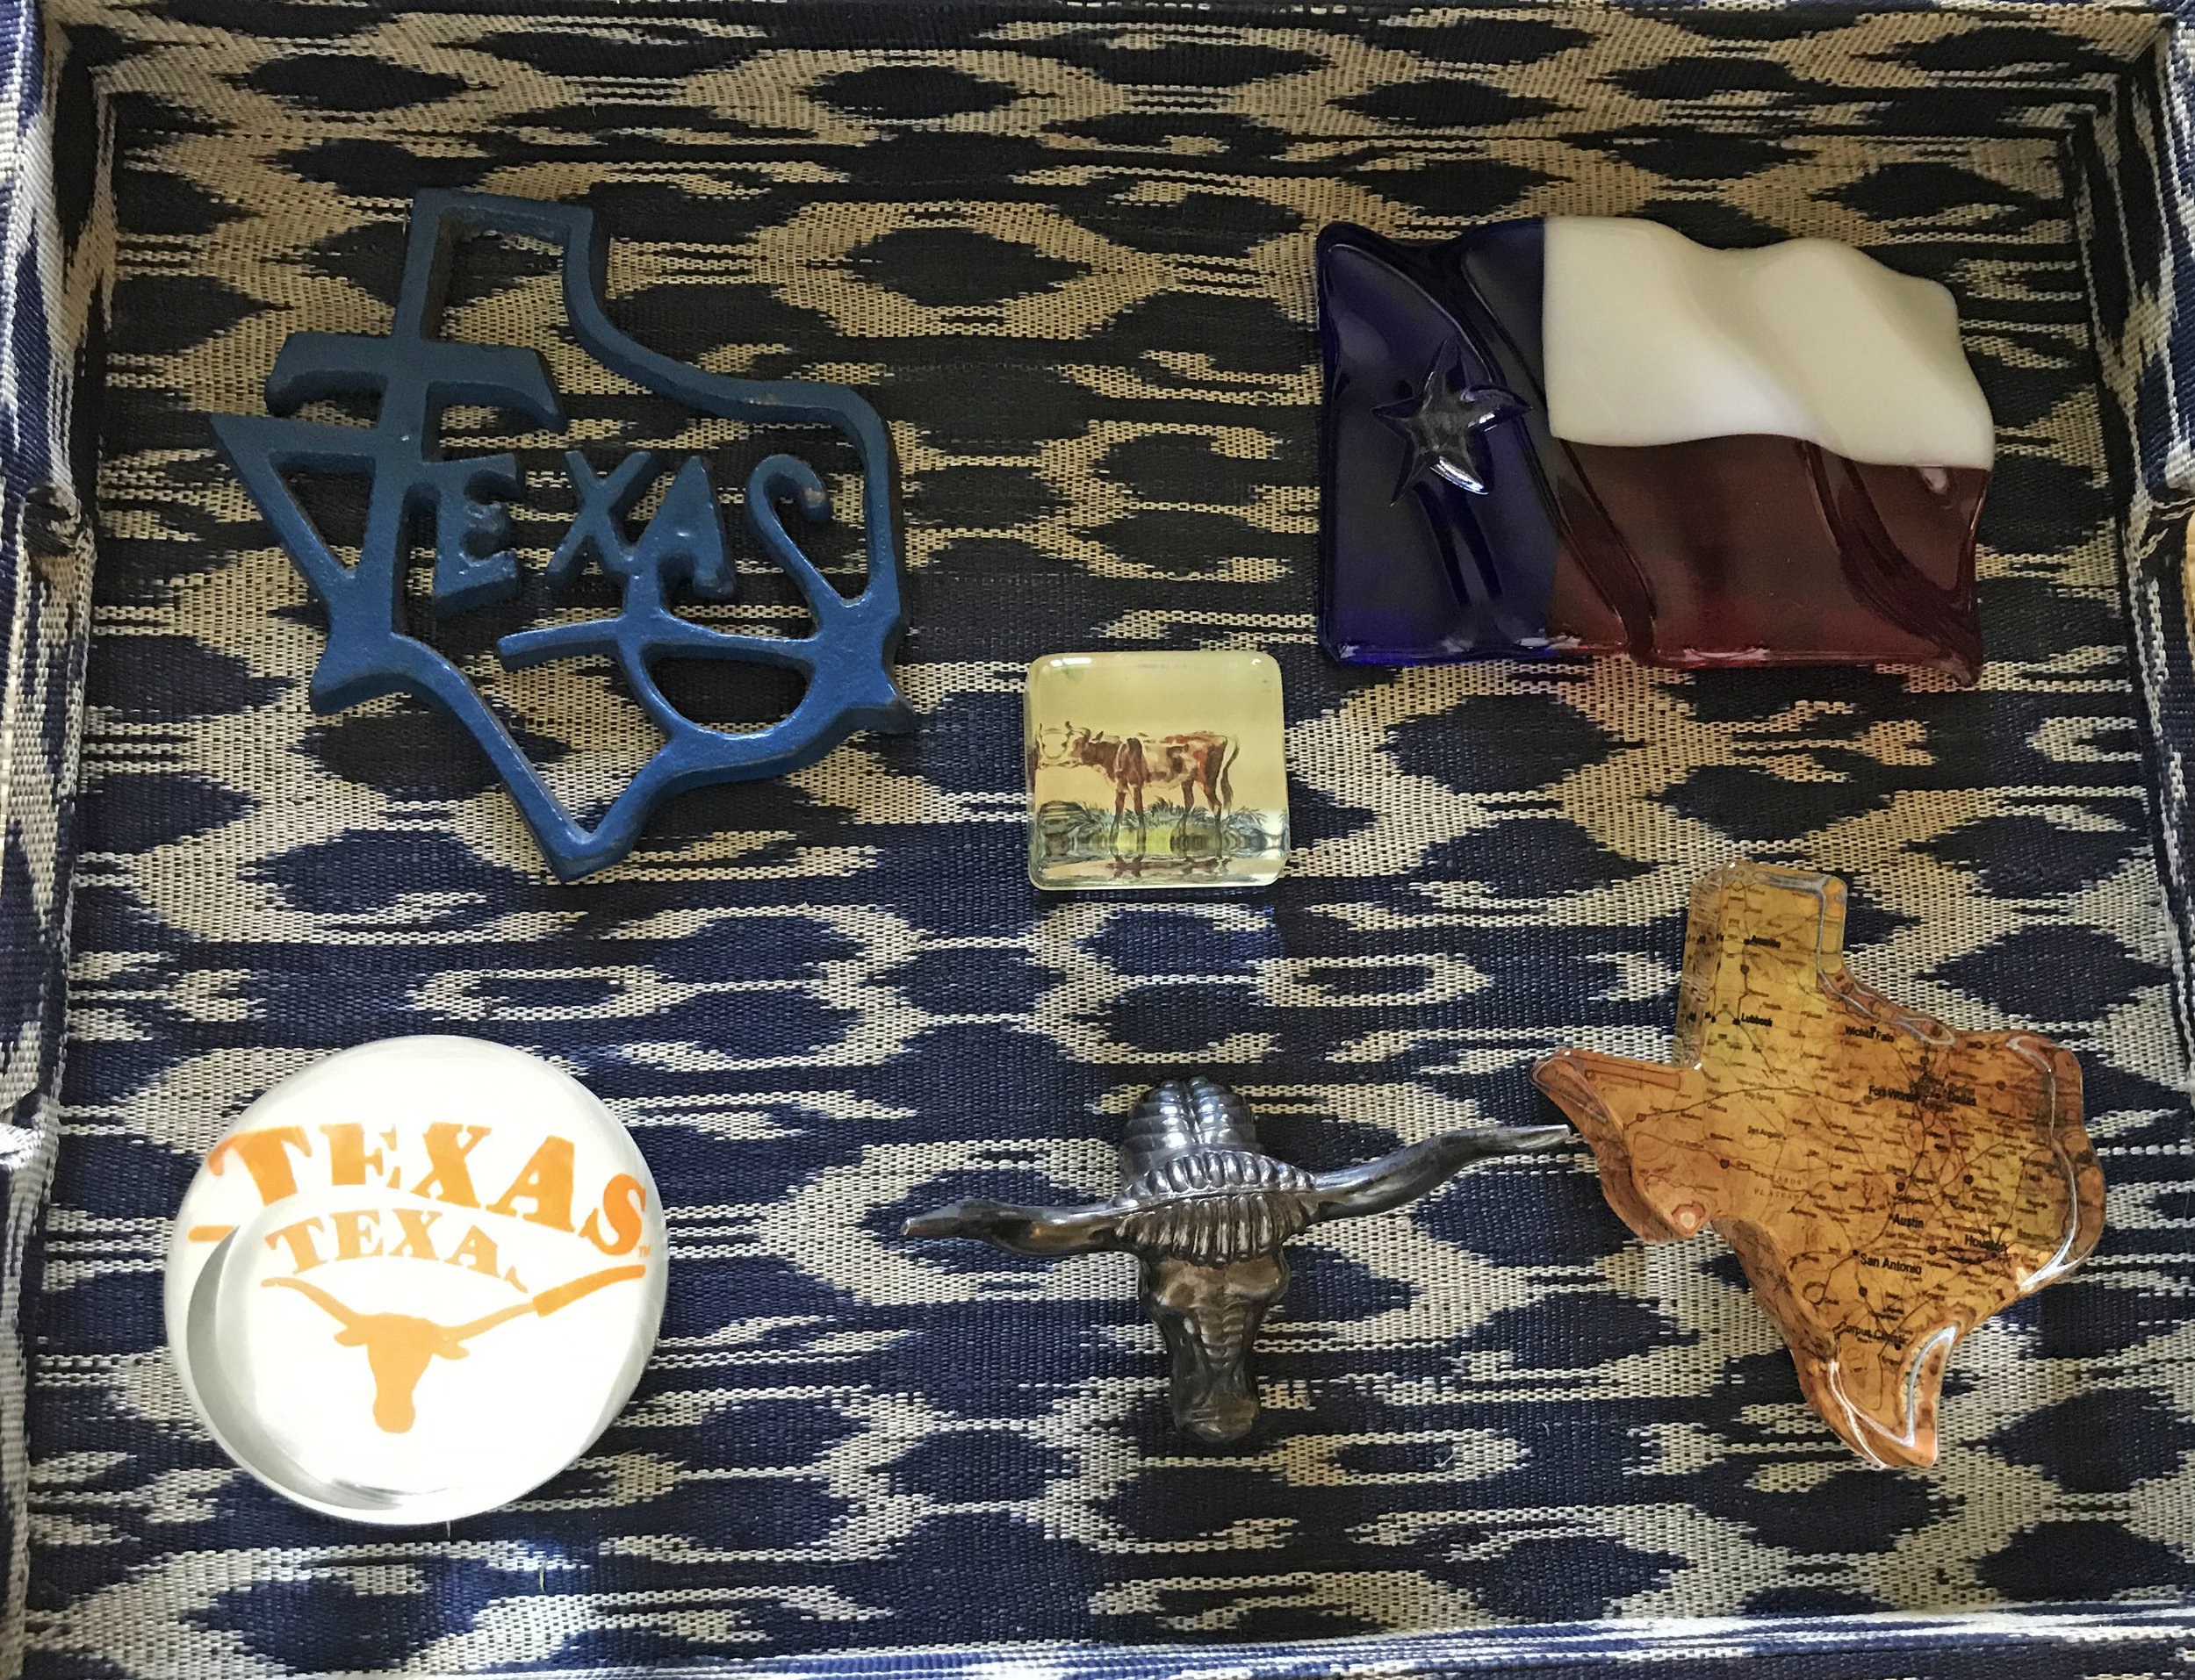 In another tray my client displays Texas paperweights. Paperweights are one of my favorite things to collect because they are affordable and come in so many shapes and sizes. Collecting with a theme is so much fun and makes gift giving super easy.